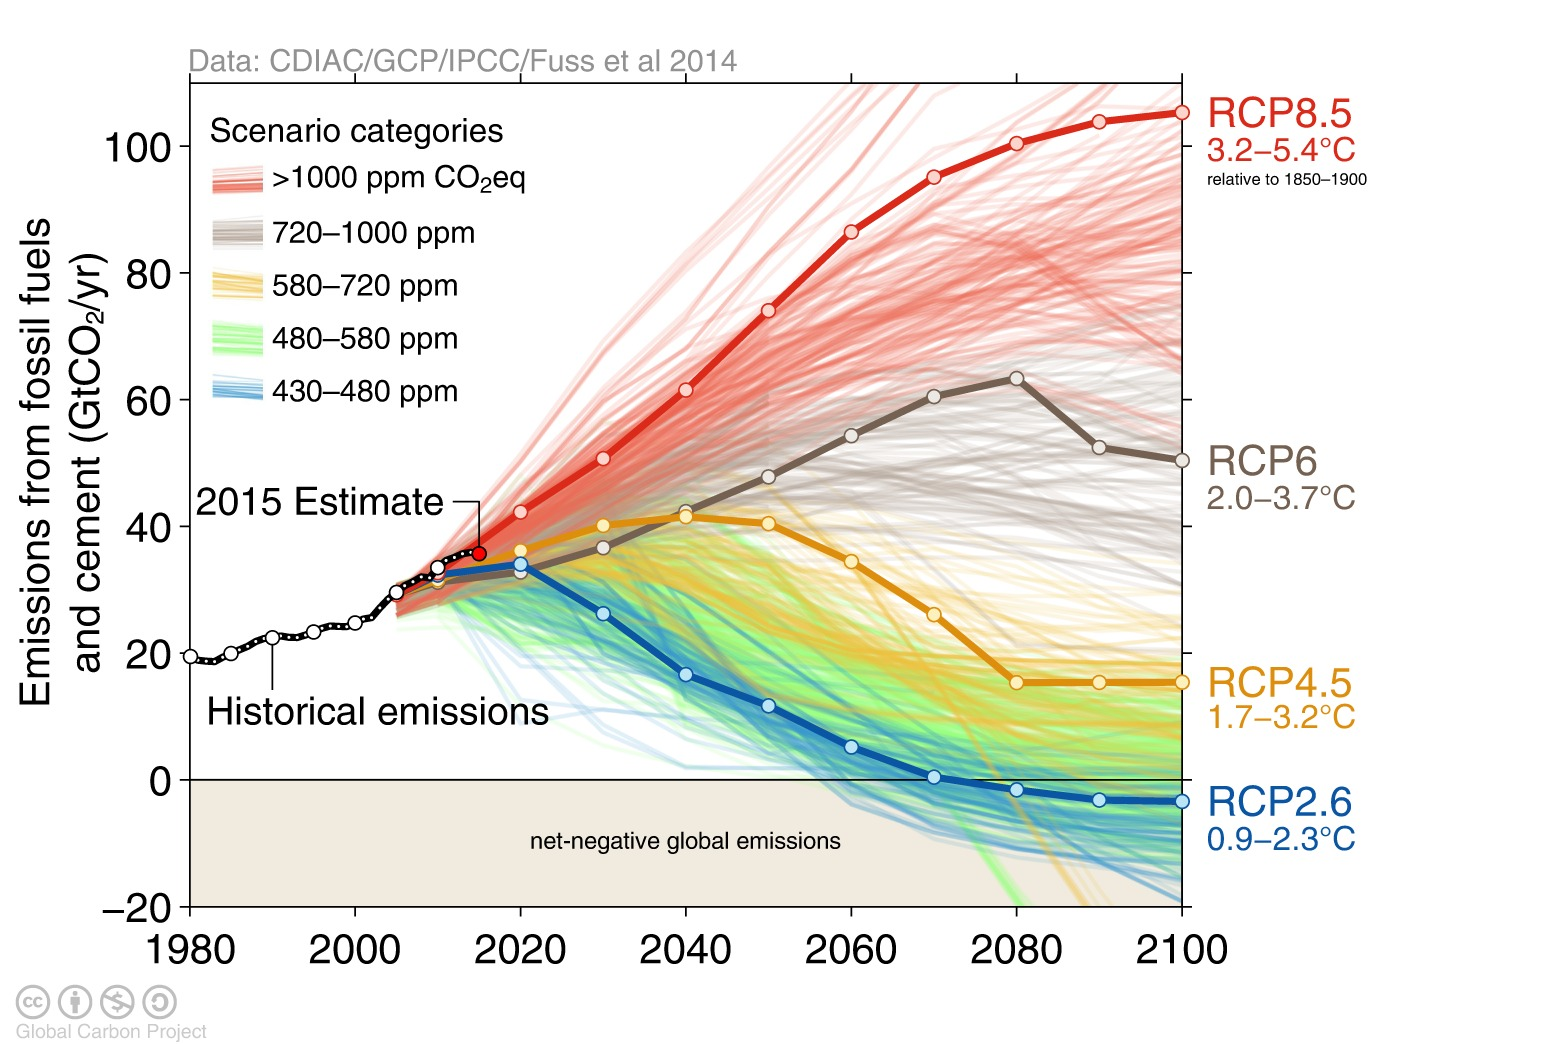 Emissions scenarios for various Representative Concentration Pathways (RCPs) with historical and current emissions overlaid